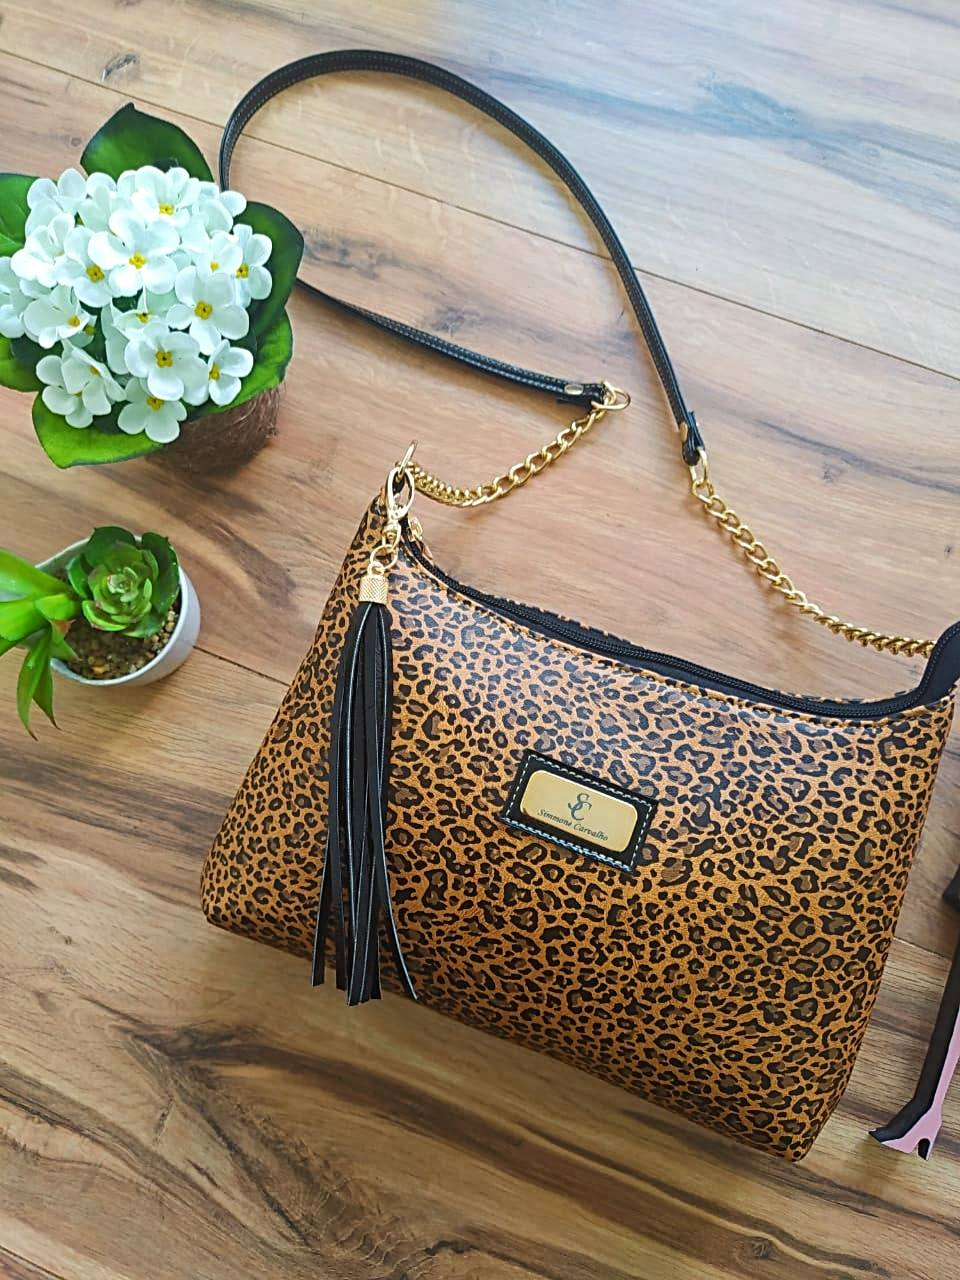 Bolsa Luana by Simmone Carvalho - SC701 - Animal Print